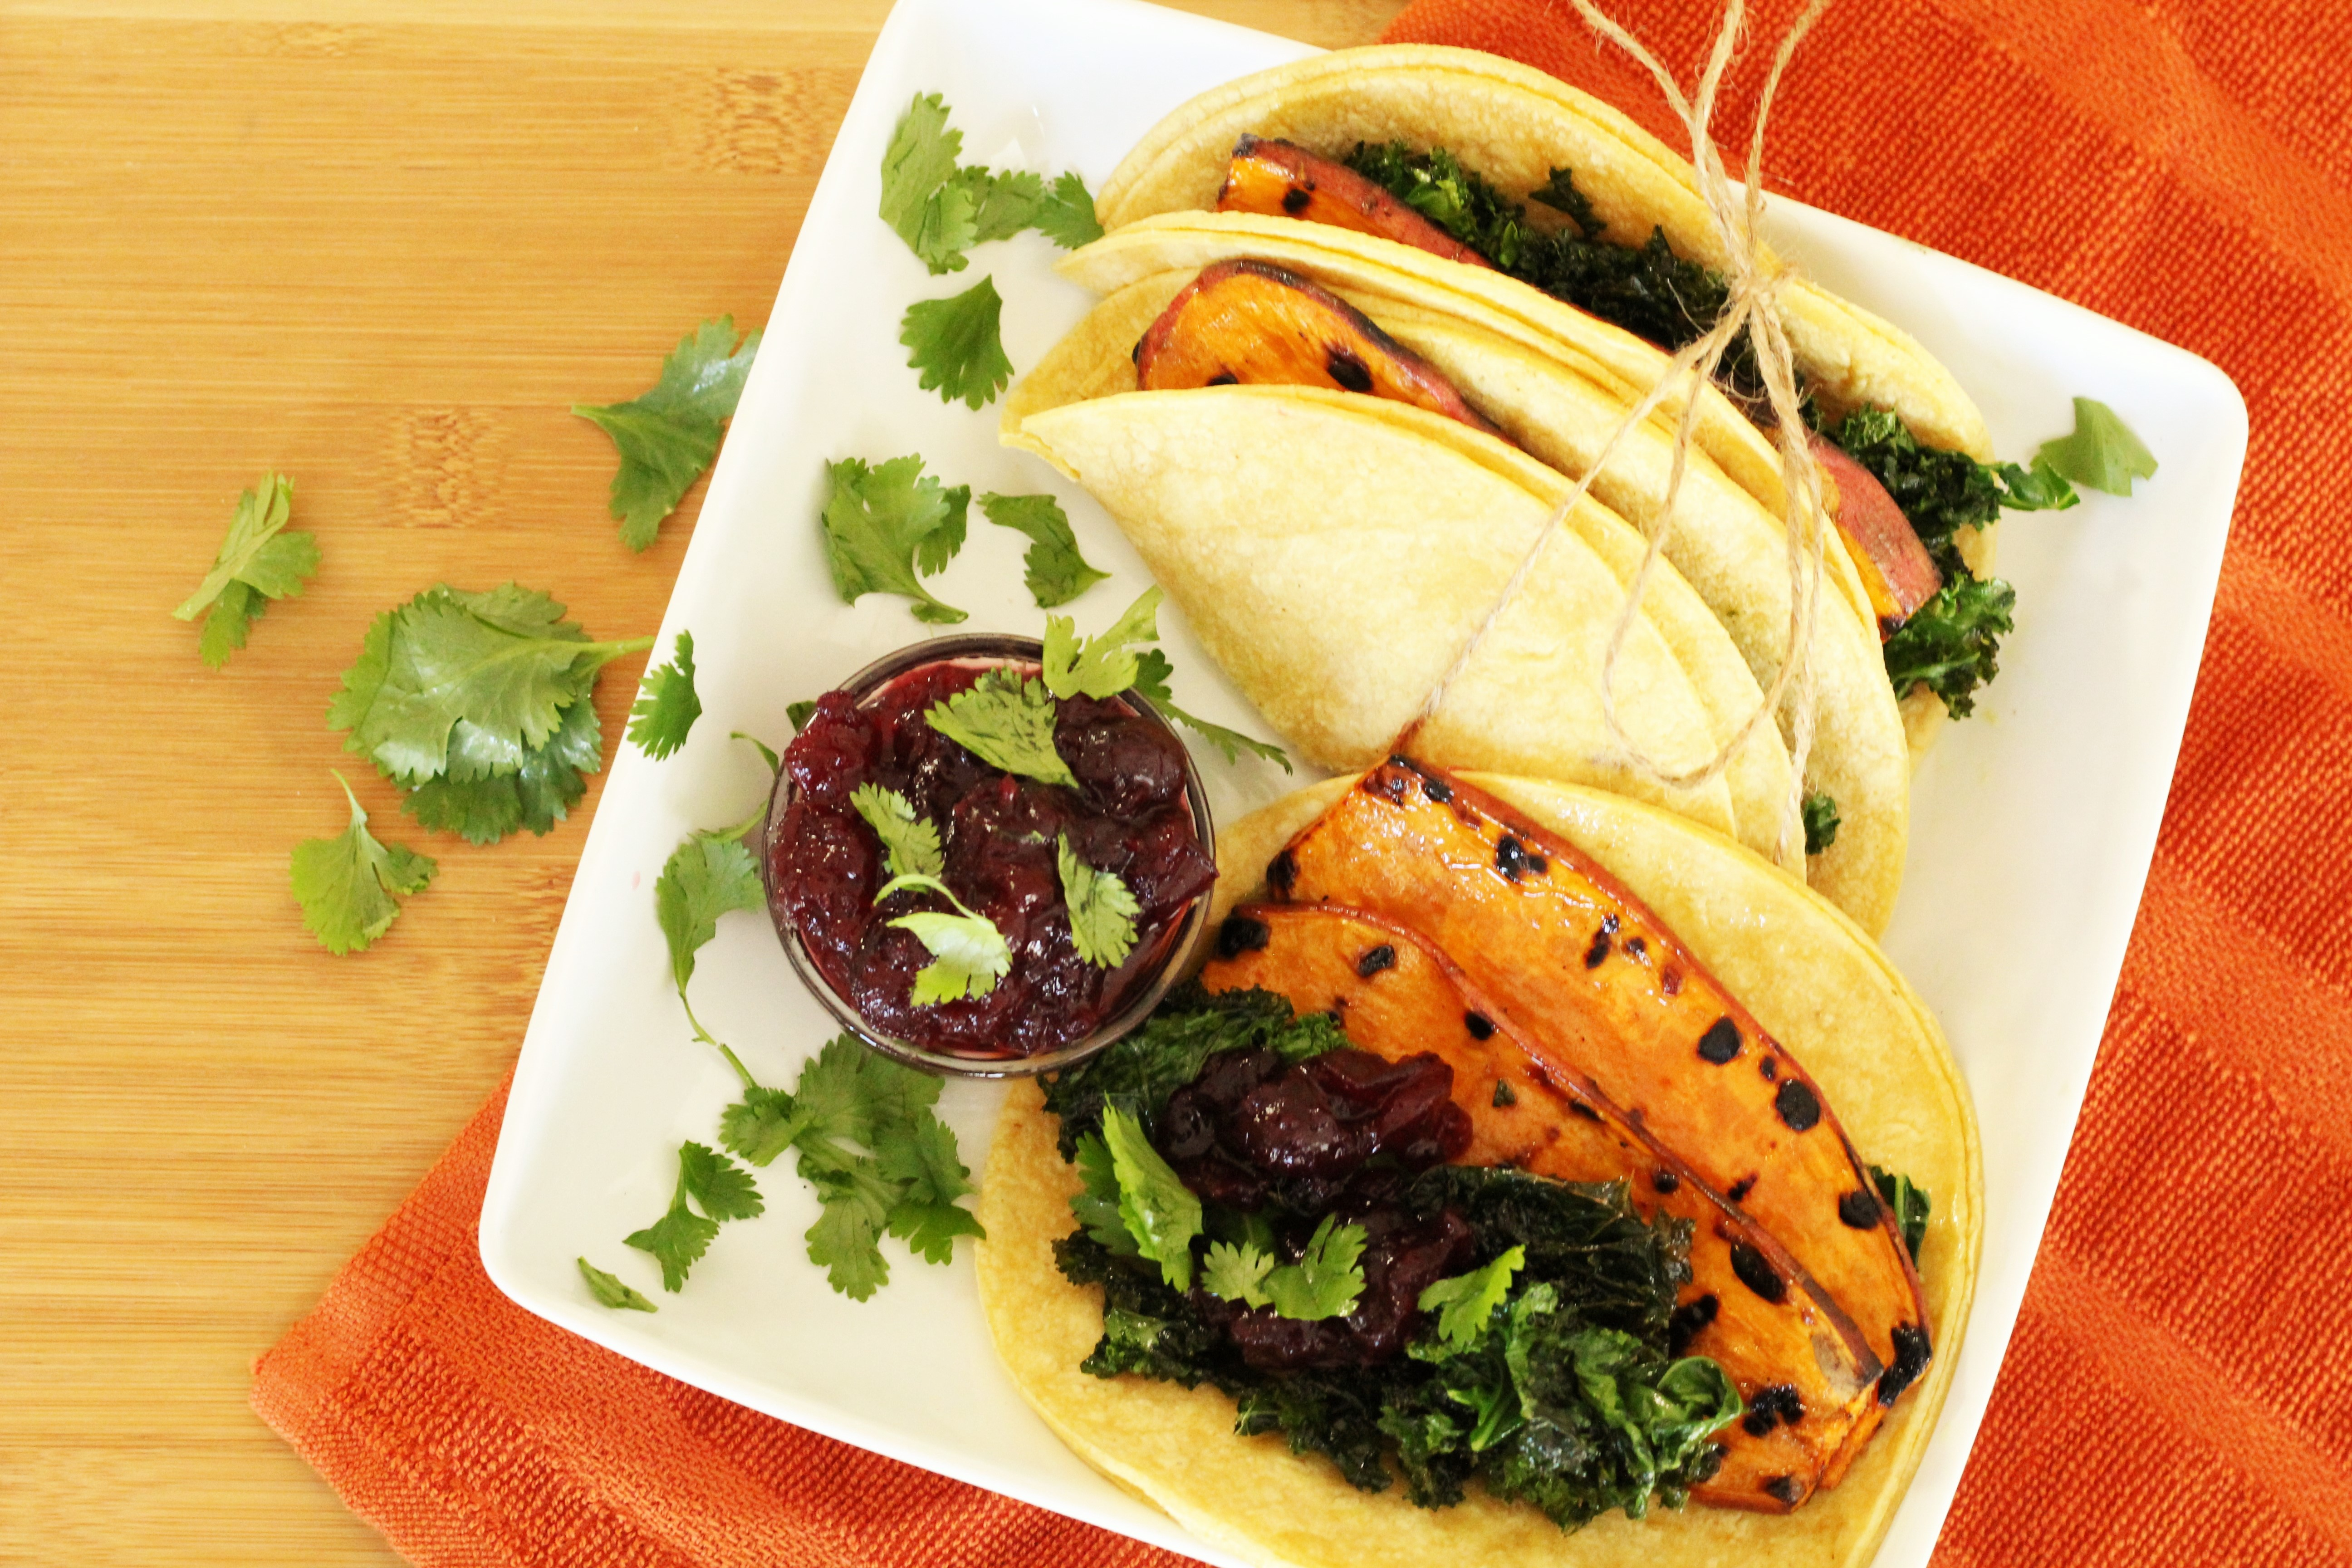 Vegetarian Thanksgiving Tacos - The perfect healthy, plant-based alternative during the holiday times. Sweet potato tacos with sauteed kale, and cranberry cilantro sauce!